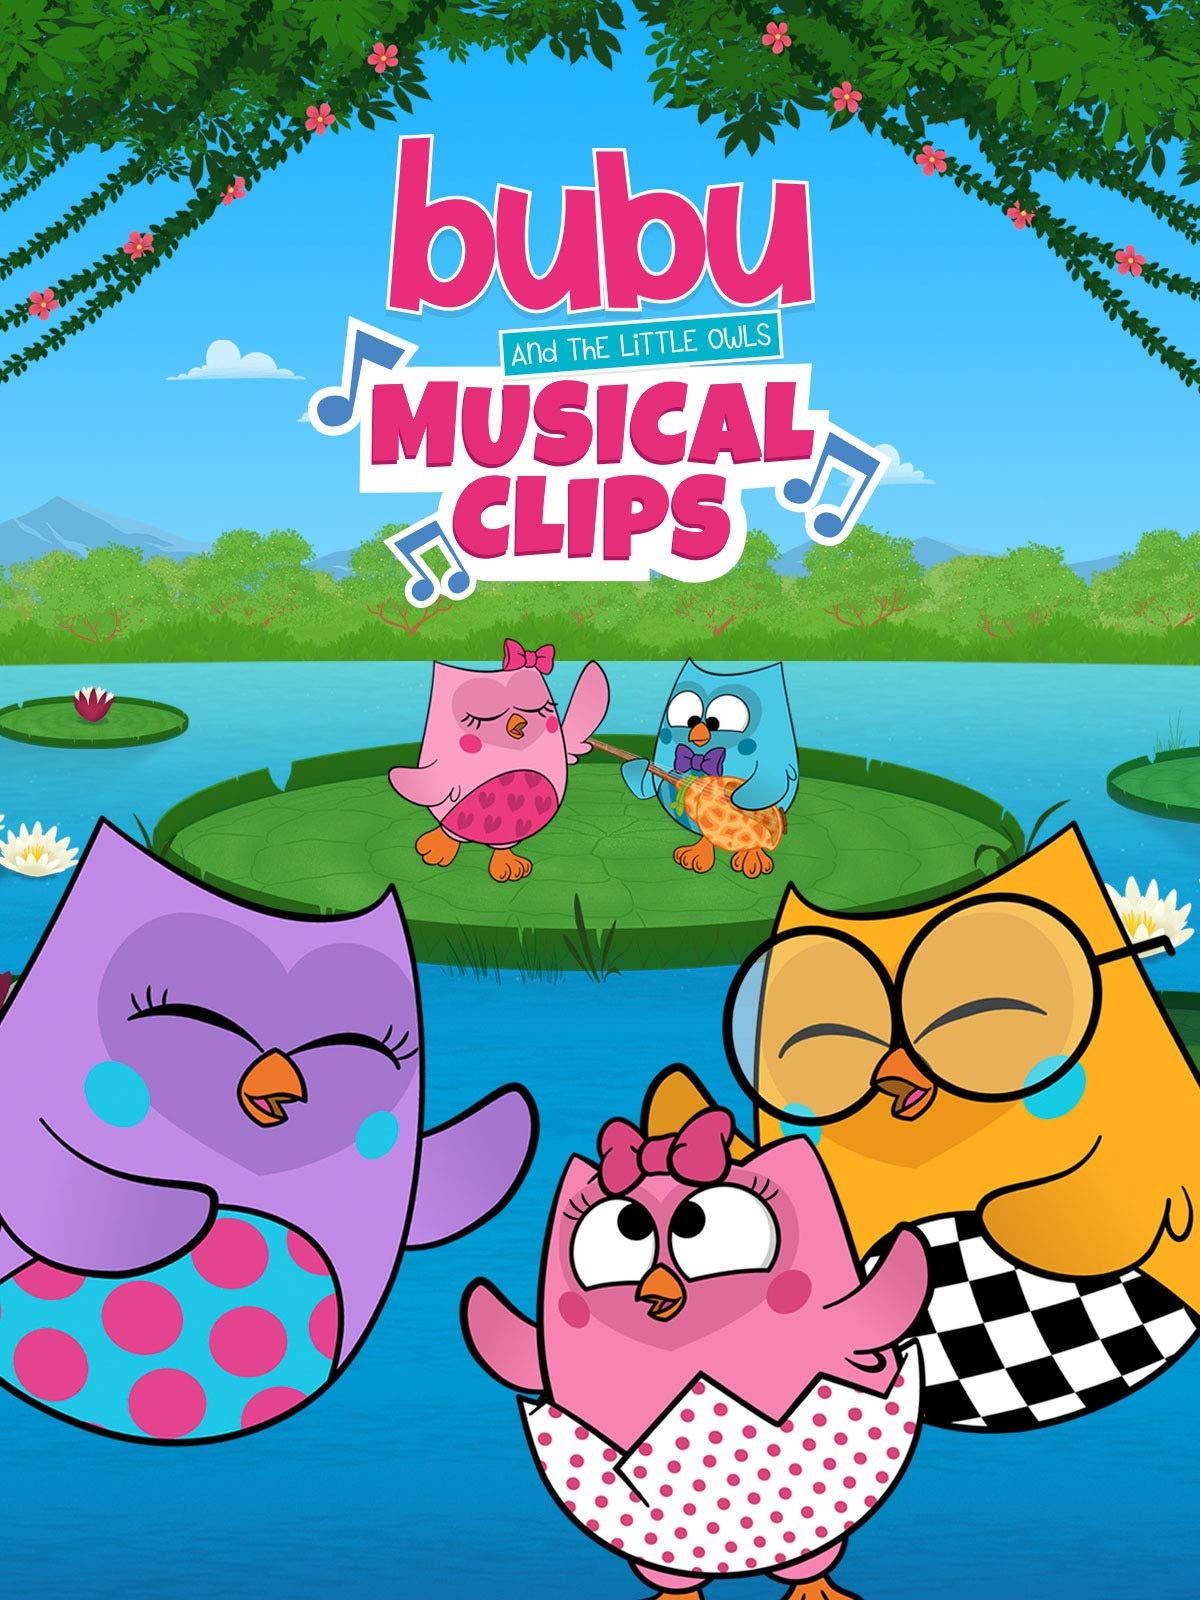 Clip: Bubu and the Little Owls - Musical Clips - Season 2